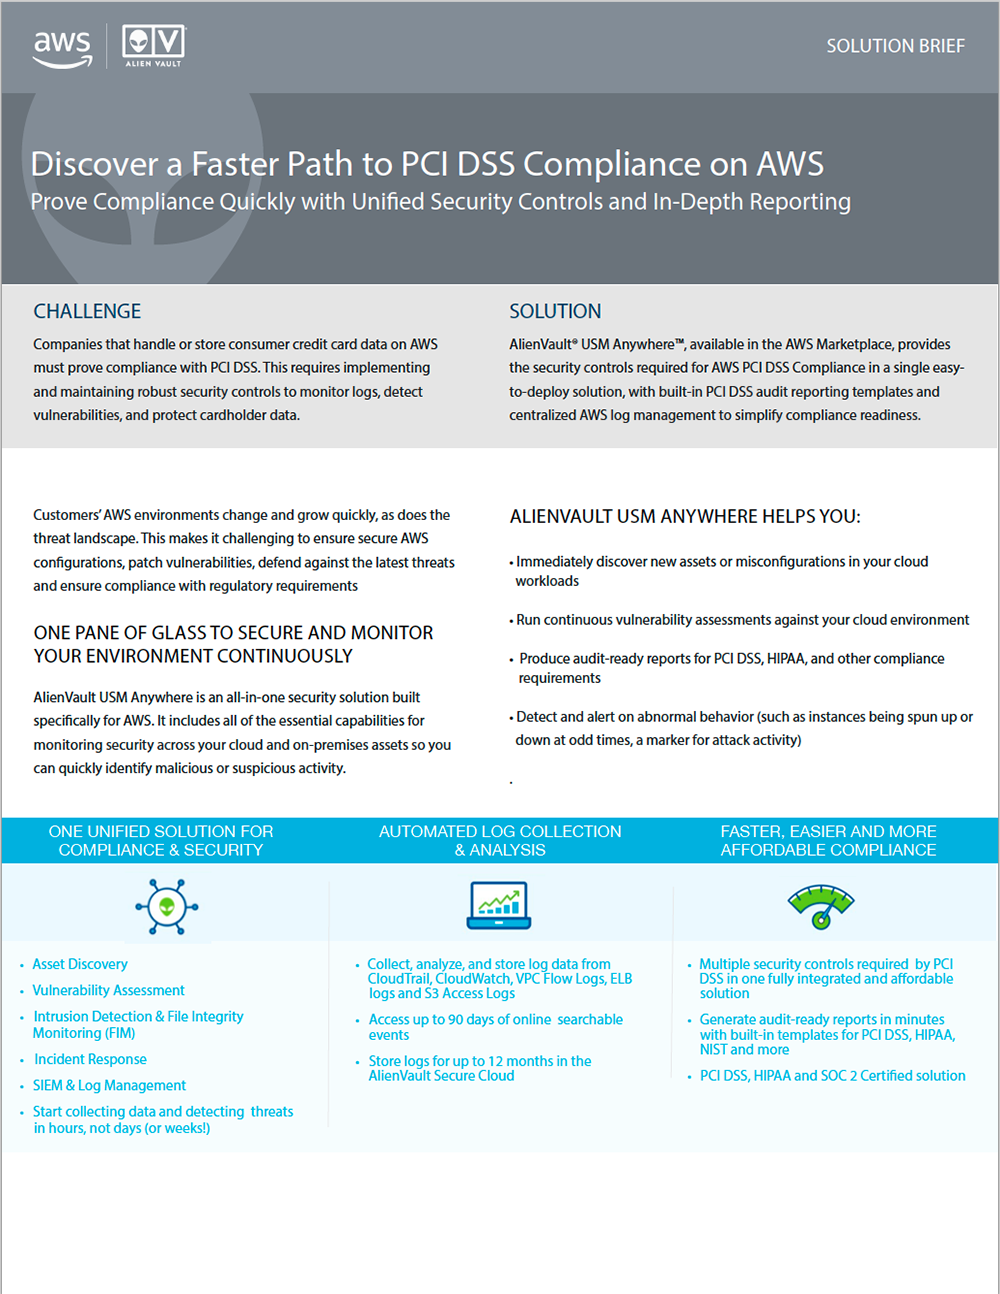 PCI DSS Compliance on AWS - Solution Brief | AlienVault